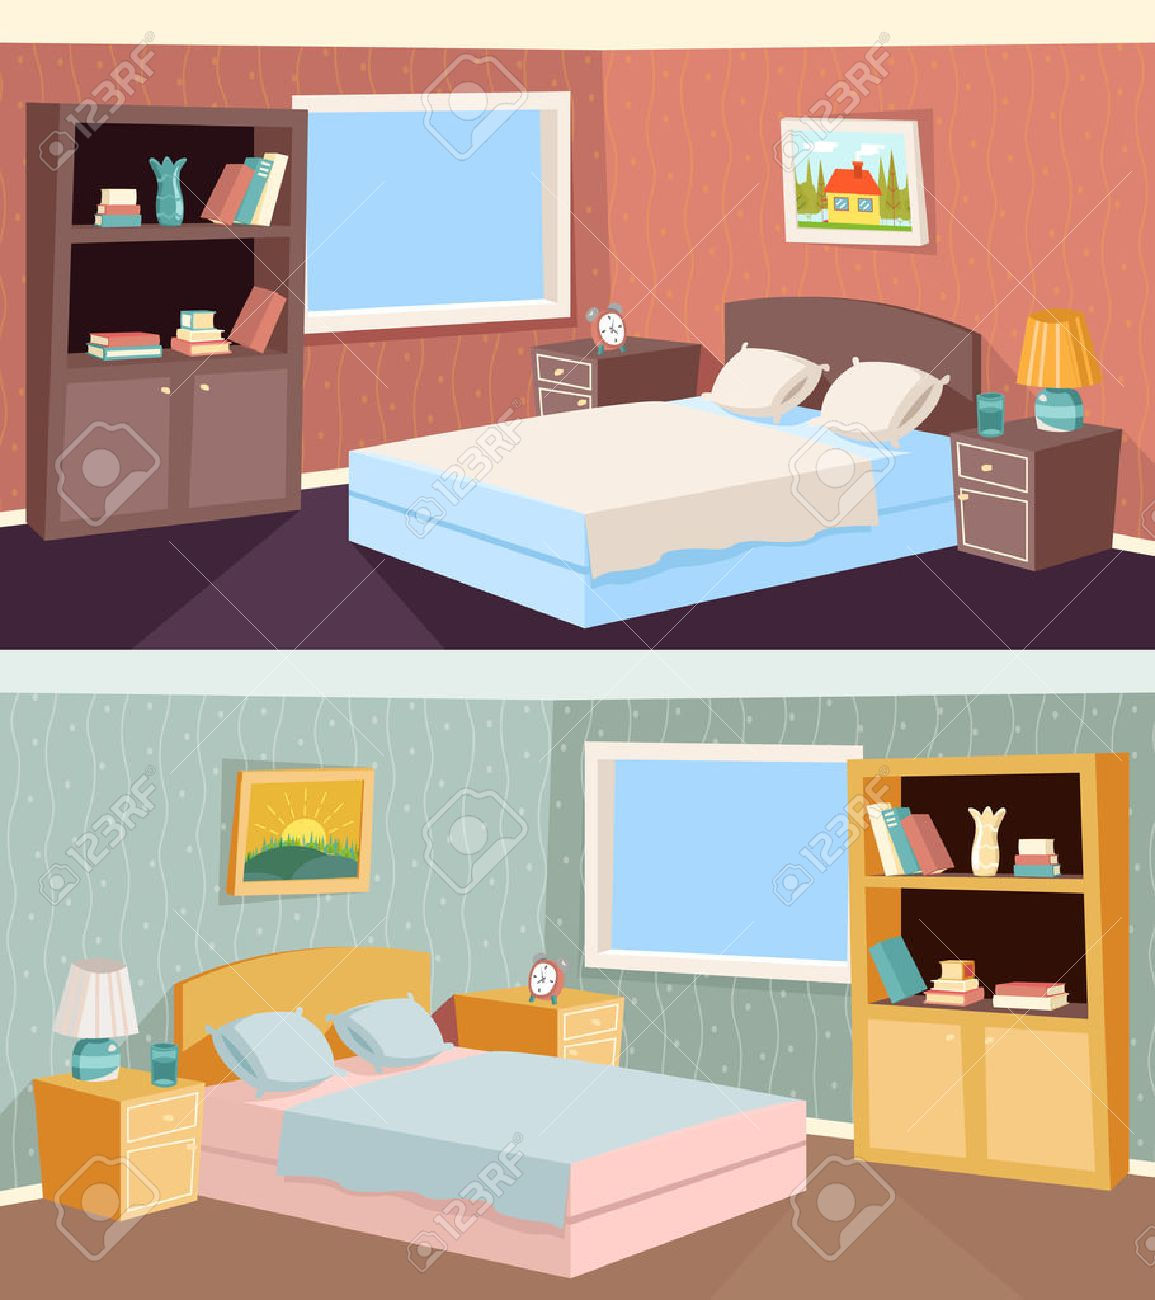 Chambre Appartement Appartement Cartoon Chambre Salon Intérieur De La Maison Chambre Retro Vintage Background Illustration Vecteur